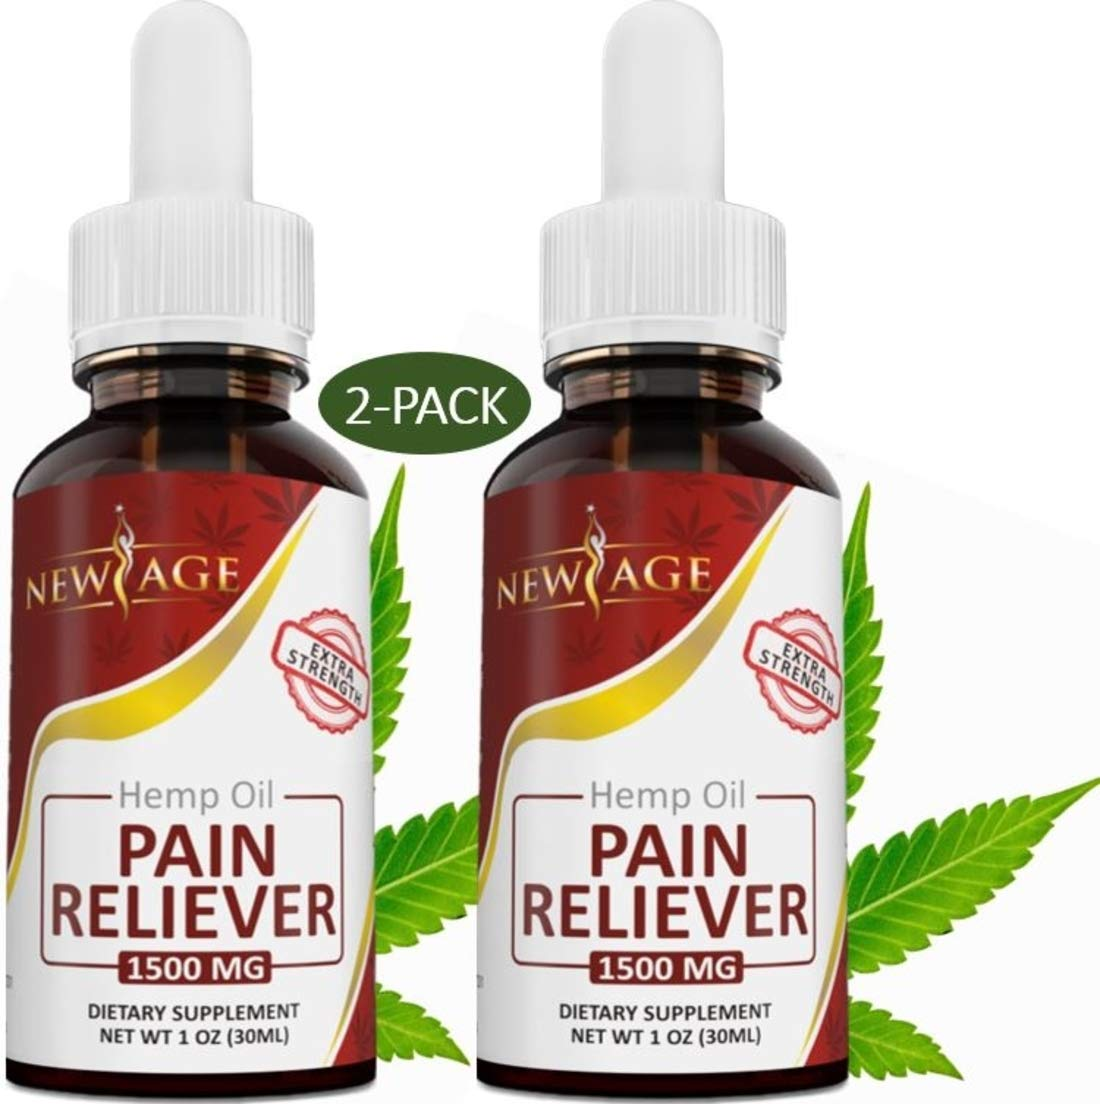 2 Pack Hemp Oil Pain Reliever, 1500mg of Organic Hemp, Pain Relief, Extra Strength, Grown & Made in The USA by New Age by New Age